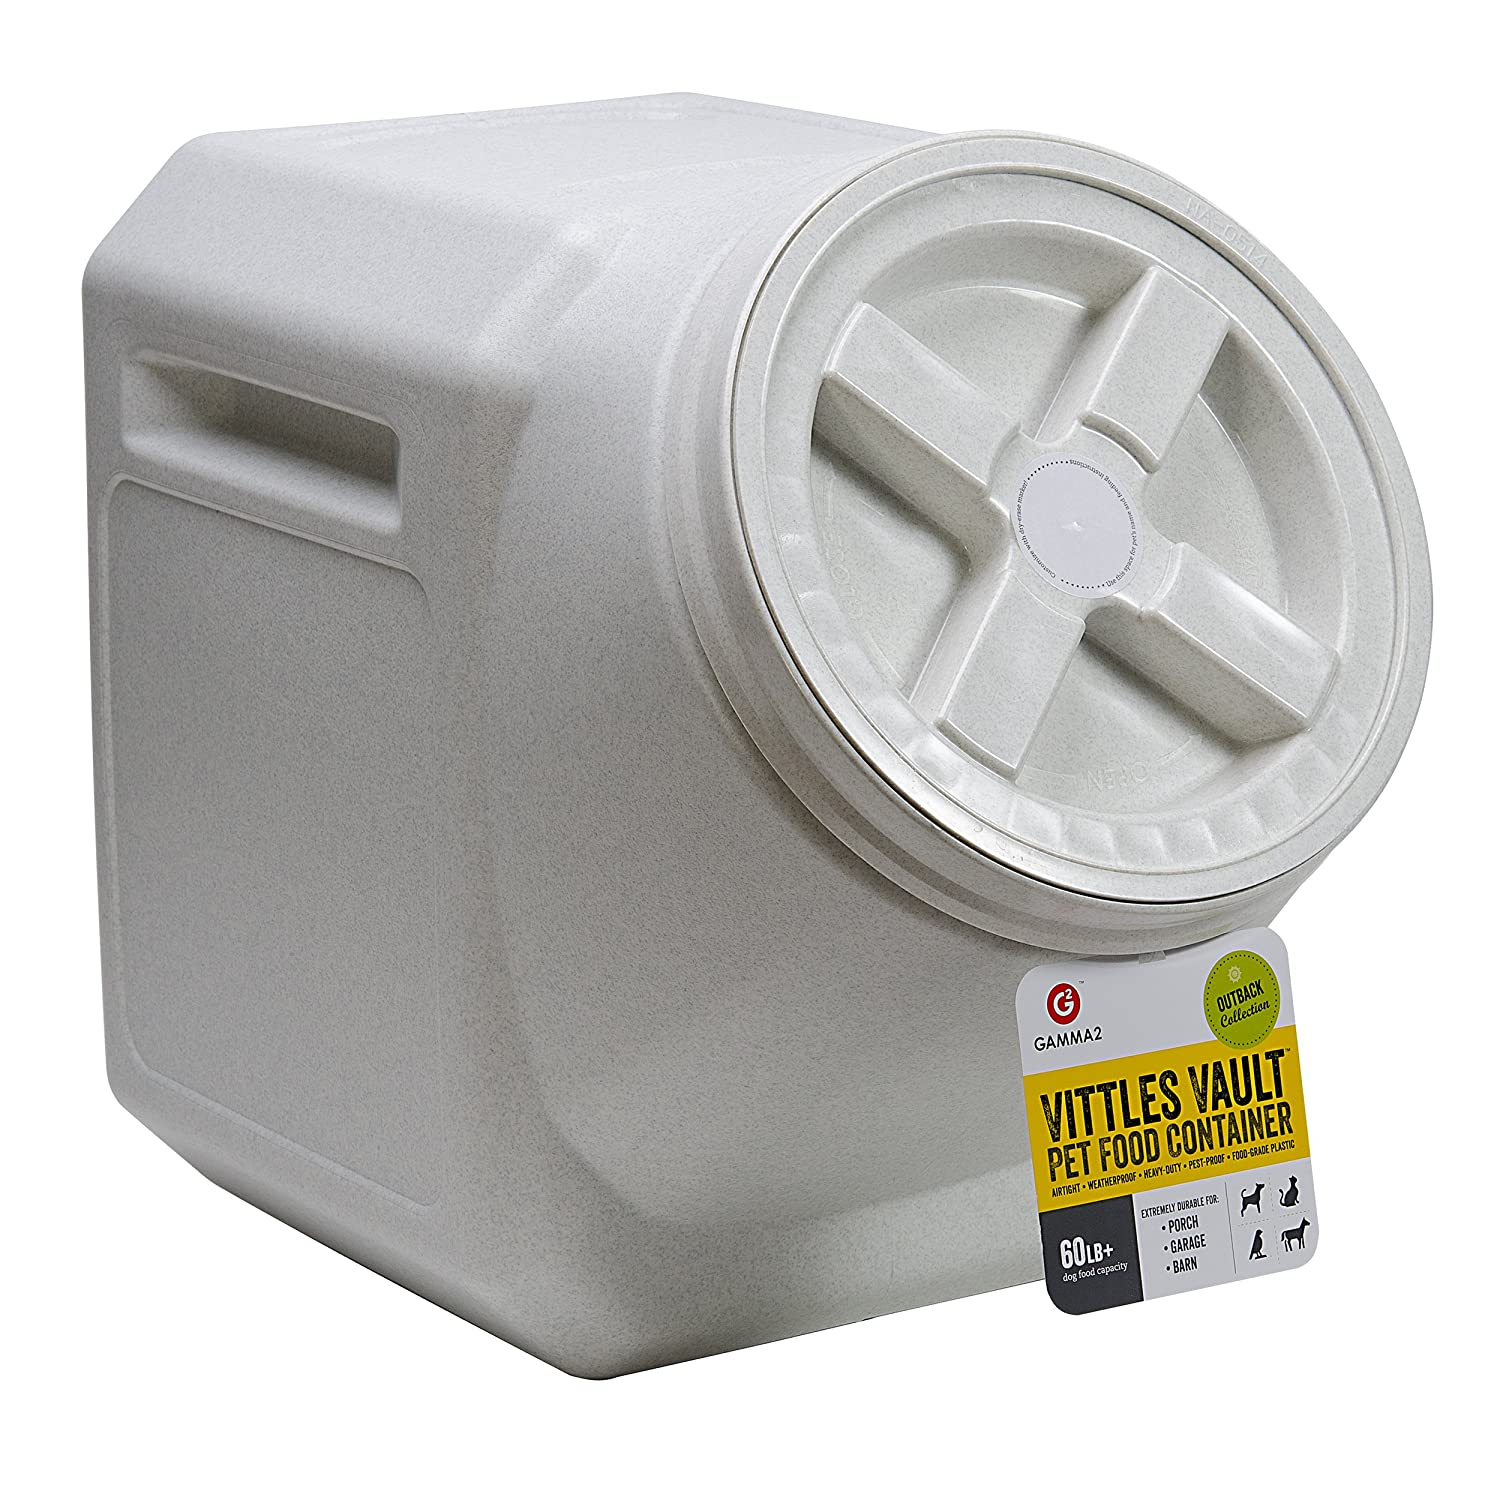 Pet Supplies Vittles Vault Outback Stackable 60 lb Airtight Pet